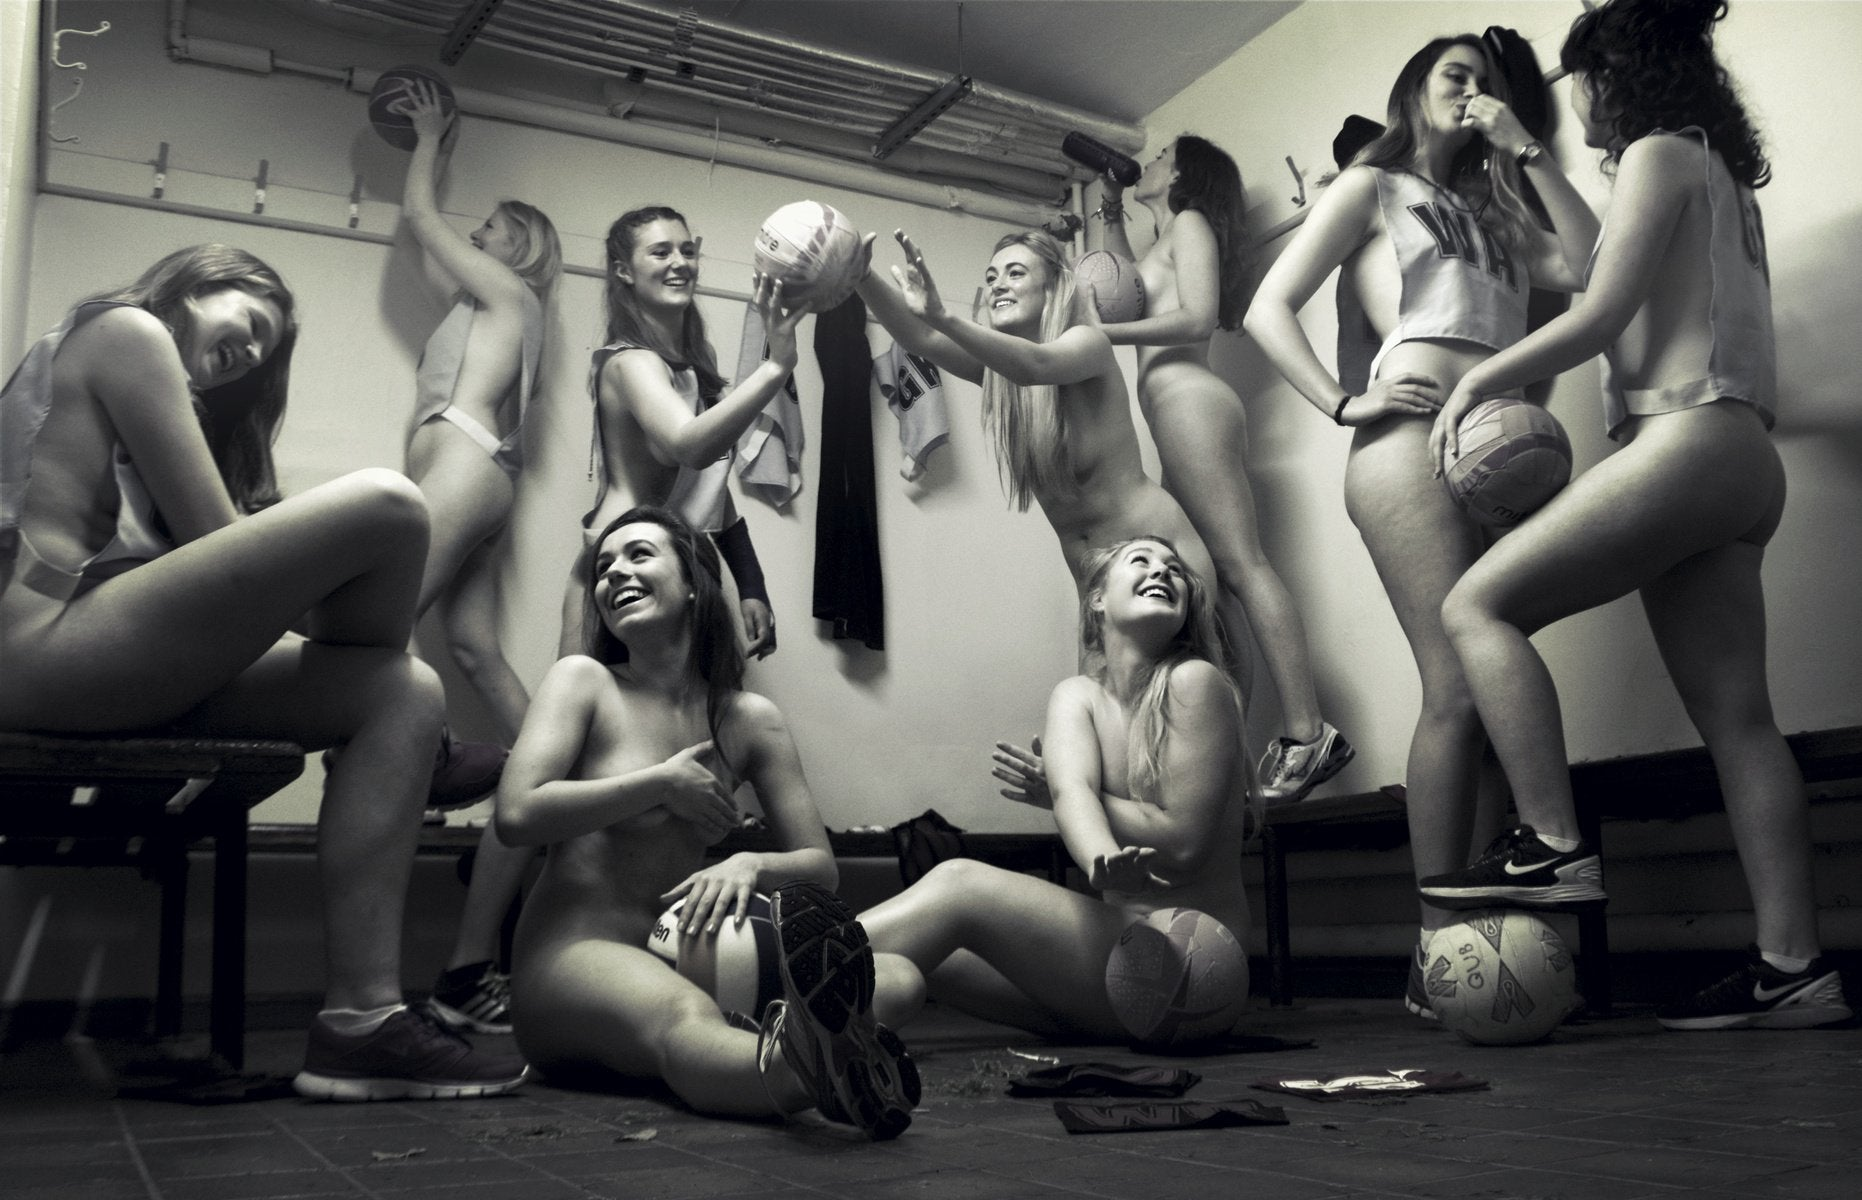 Nude in locker room after volleyball